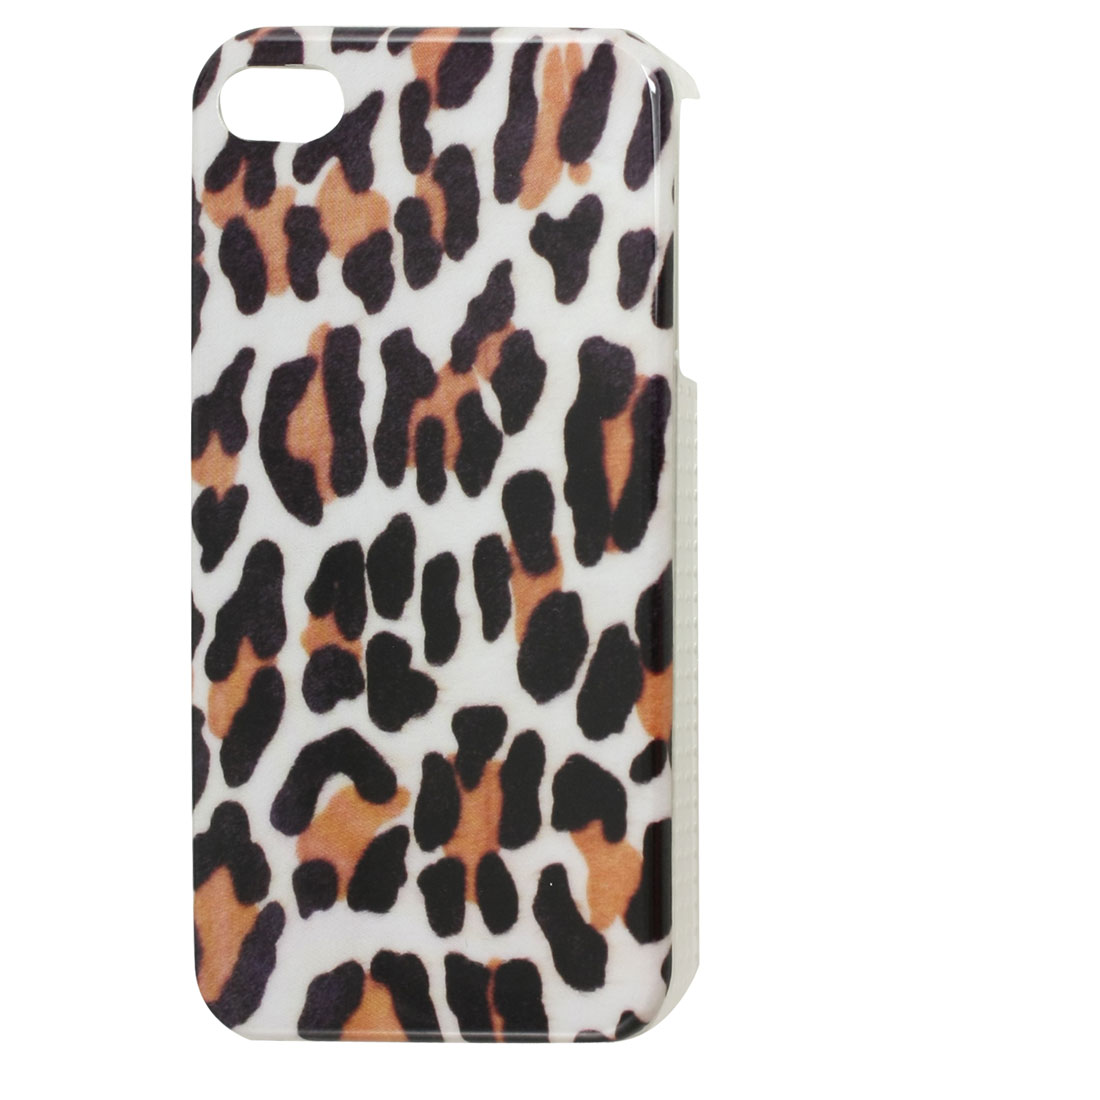 Plastic Black Brown Leopard Print IMD Back Case for iPhone 4 4G 4GS 4S